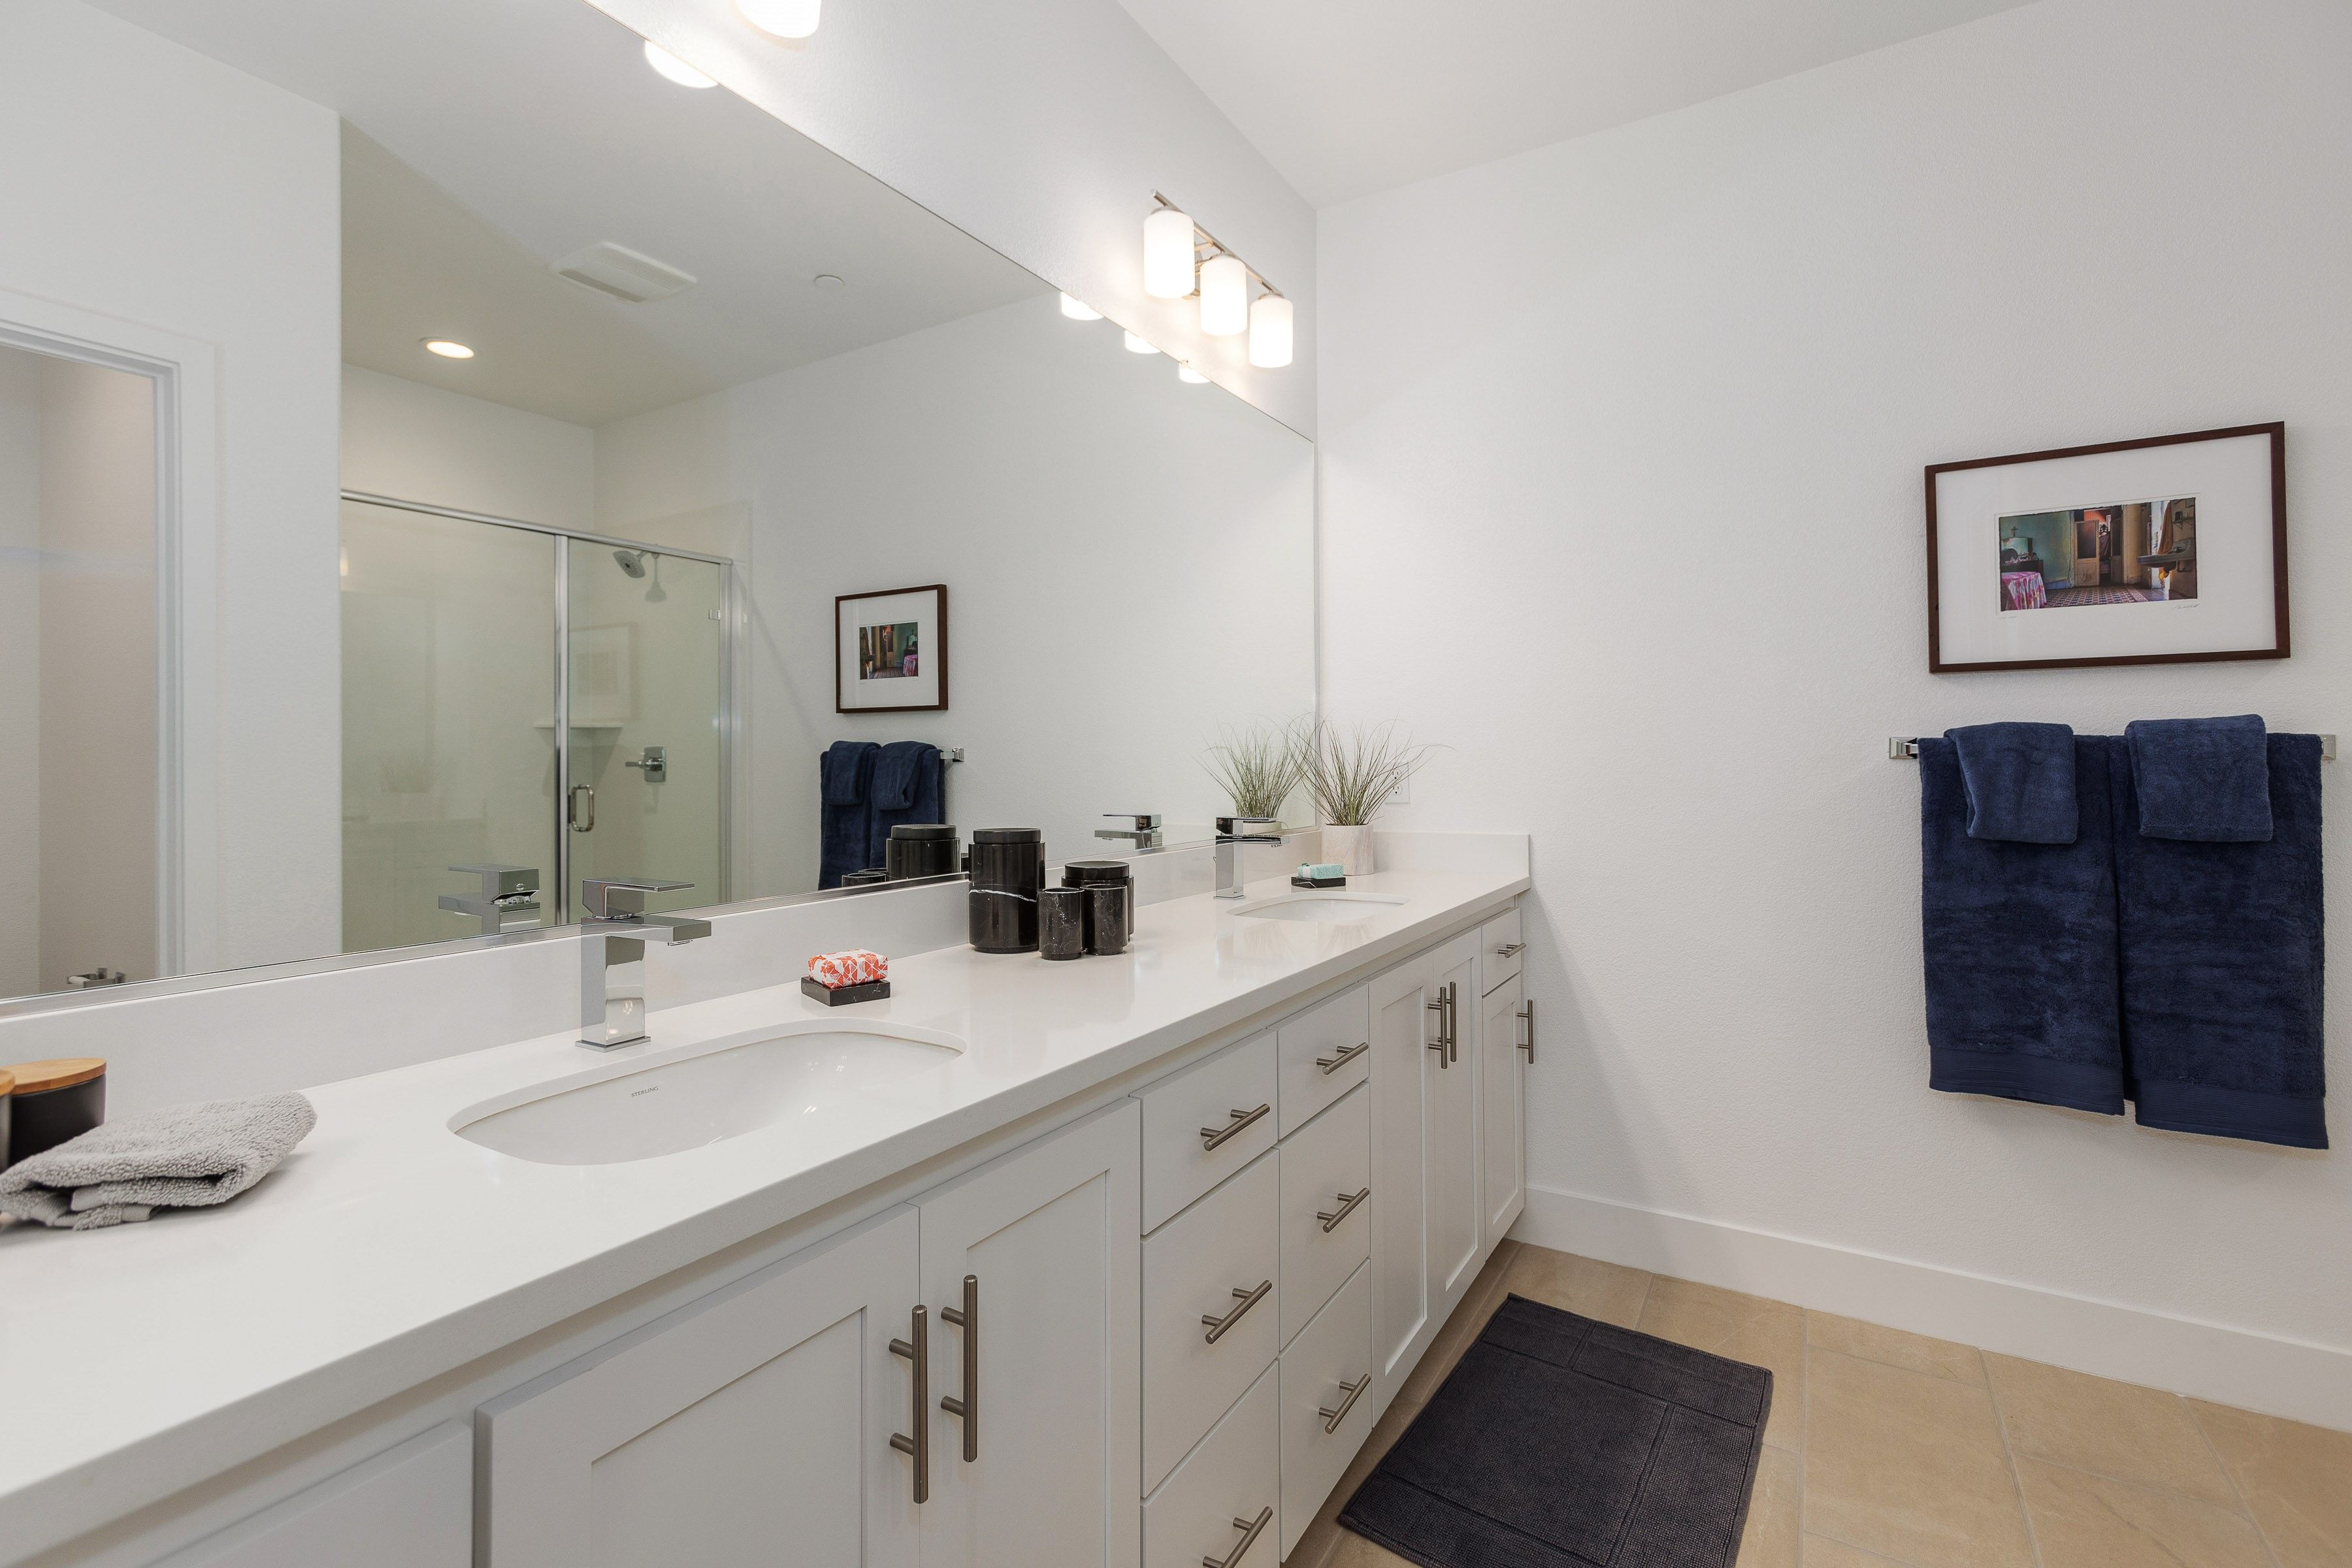 Bathroom featured in the Plan 2 WLH By Taylor Morrison in Oakland-Alameda, CA